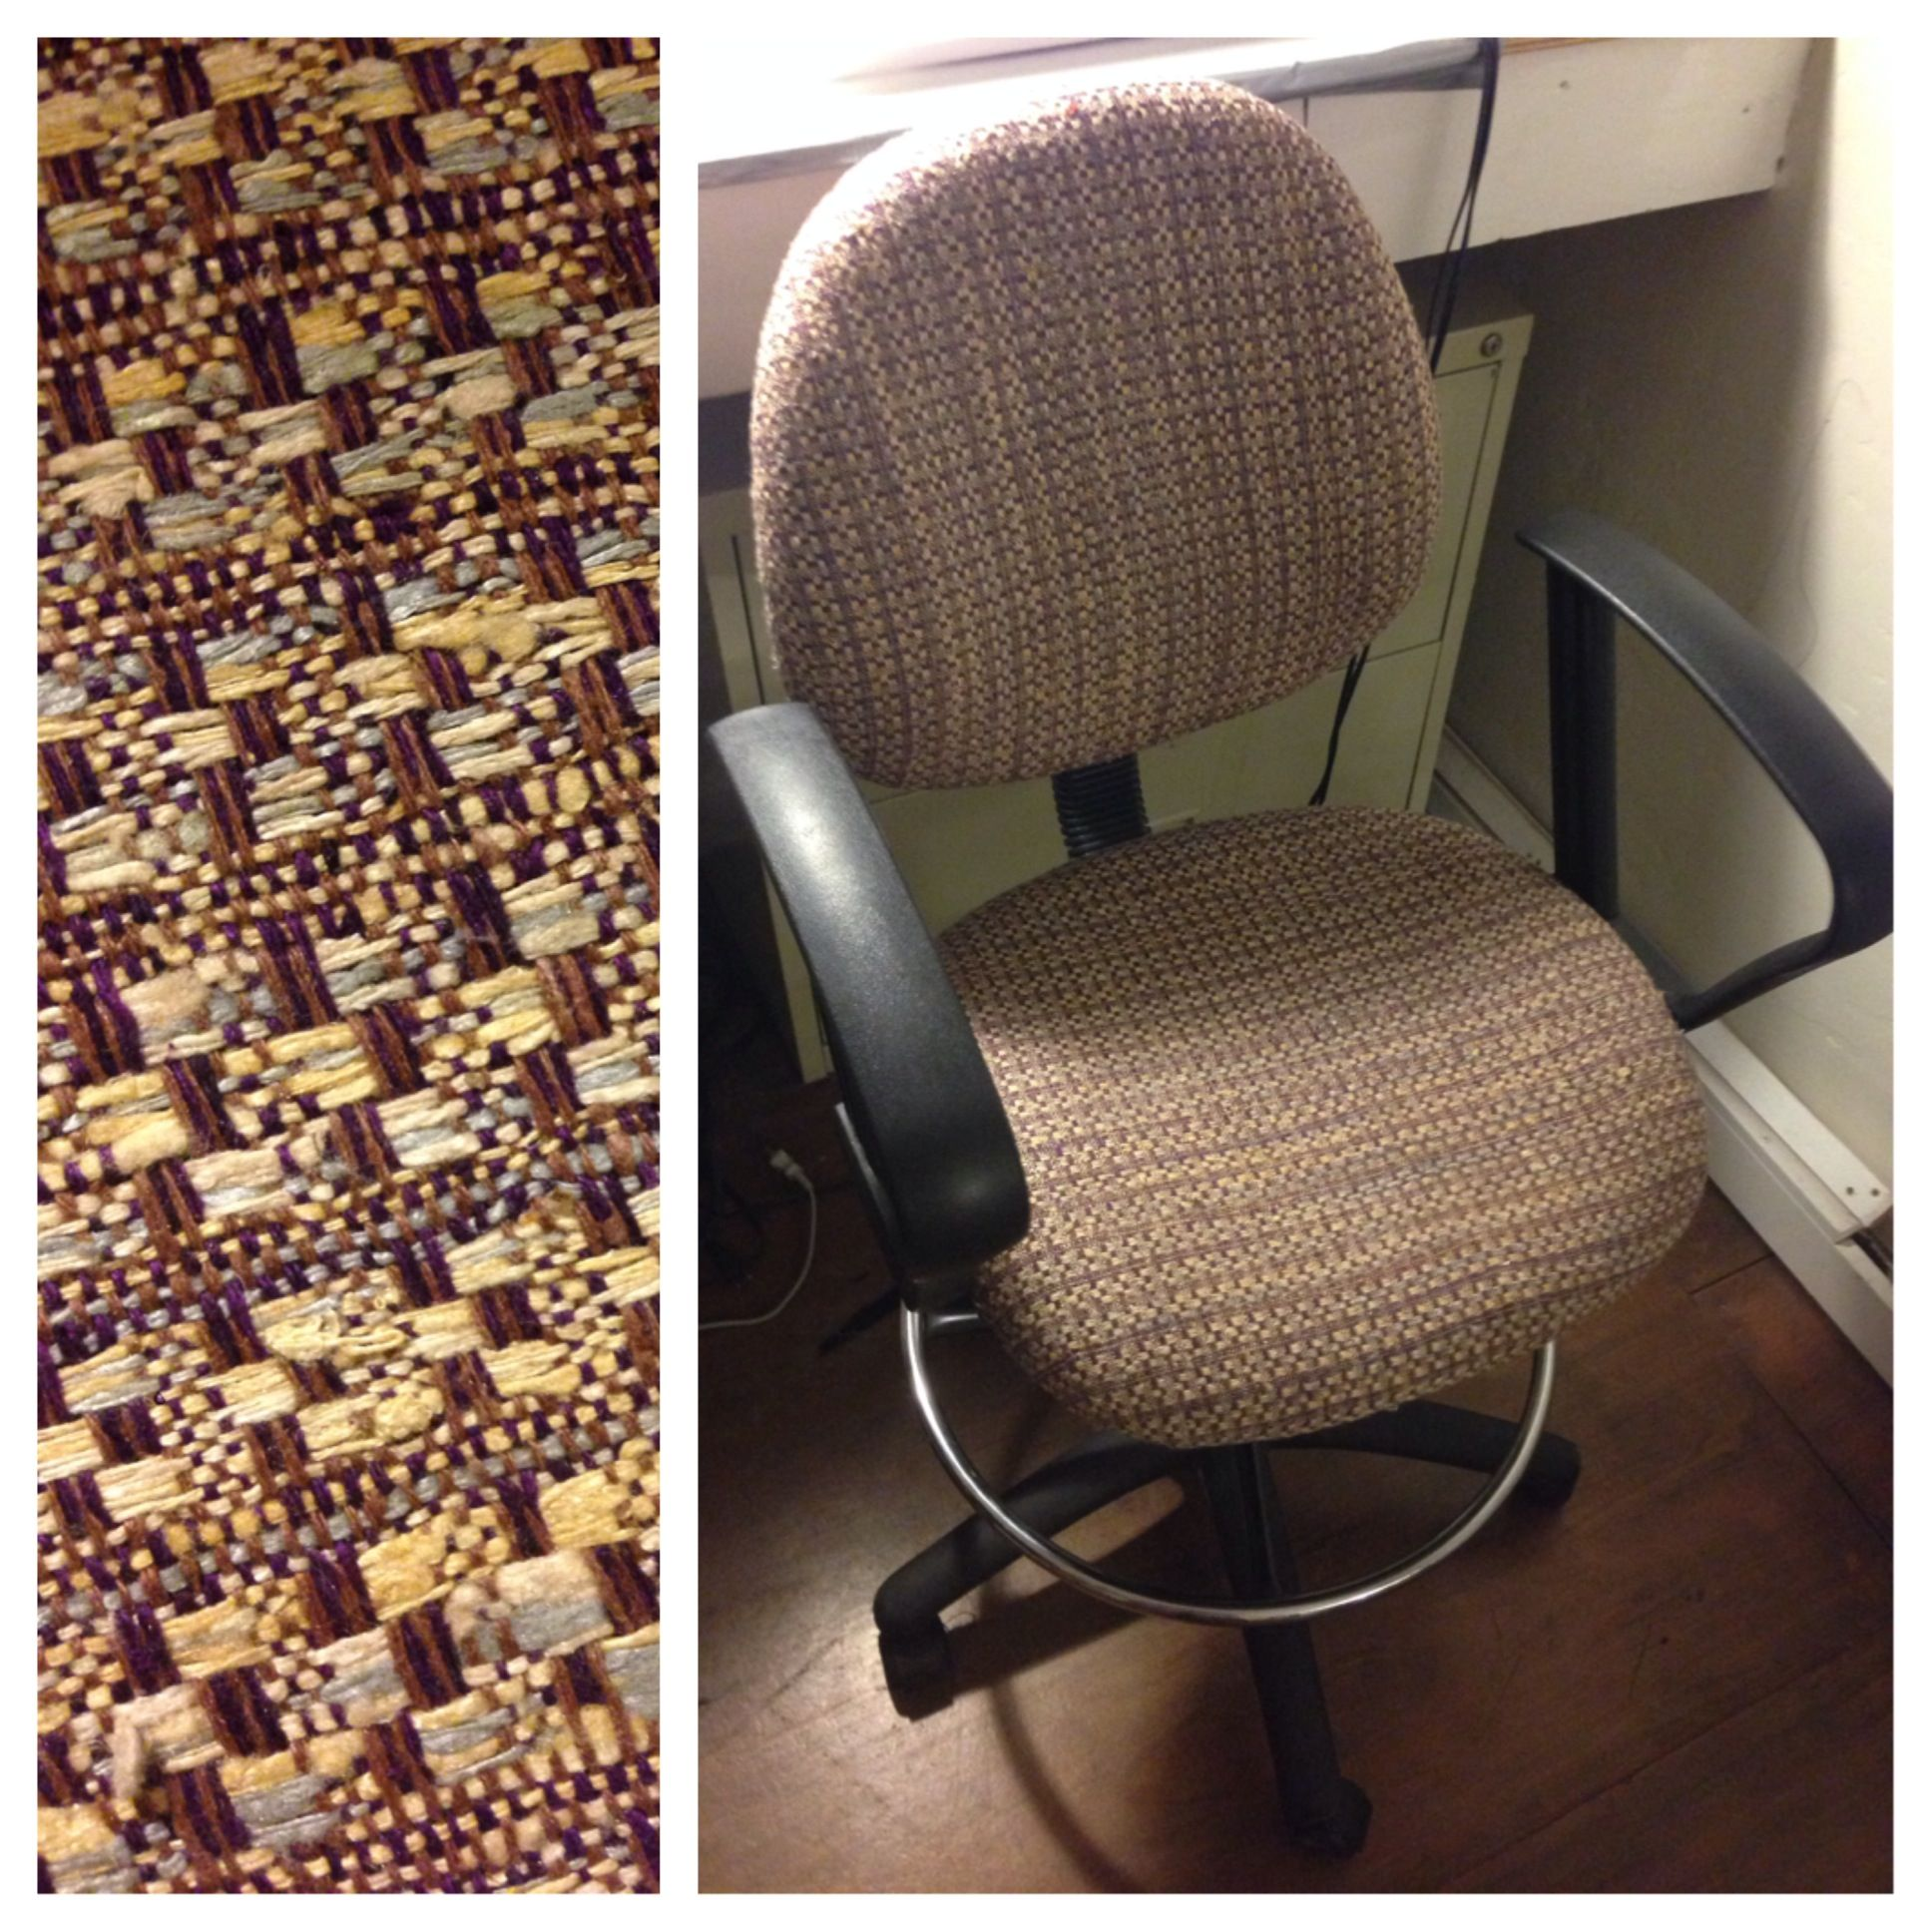 office chair upholstery. Reupholstered Office Chair. #upholstery #reupholster #chair #officechair #upcycle #recycle Chair Upholstery T